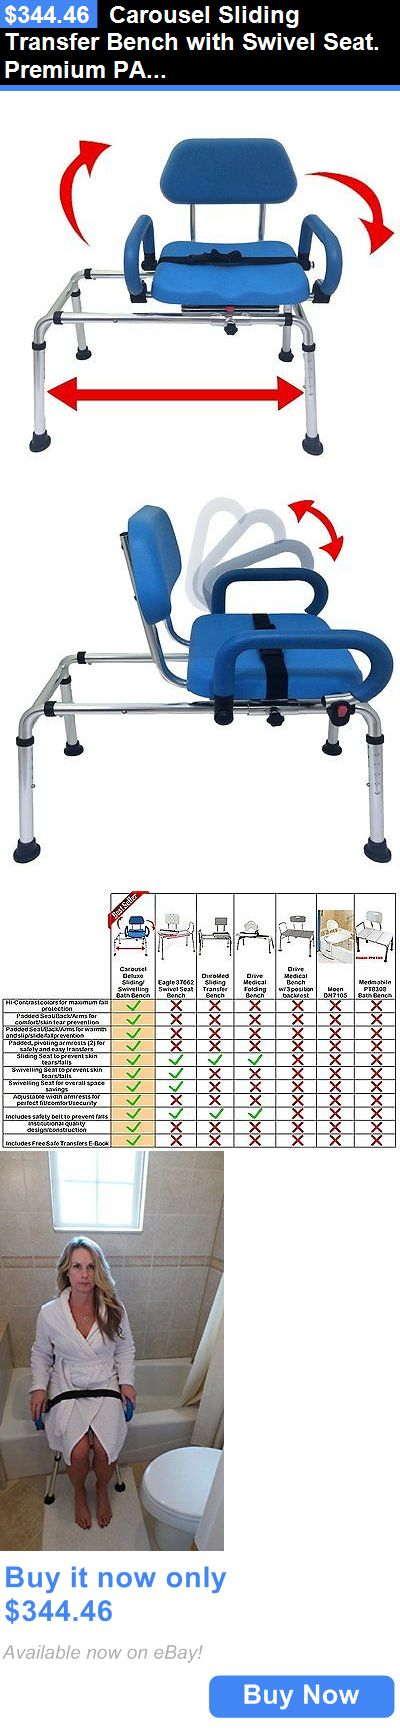 Transfer Boards and Benches: Carousel Sliding Transfer Bench With Swivel Seat. Premium Padded Bath And Shower BUY IT NOW ONLY: $344.46